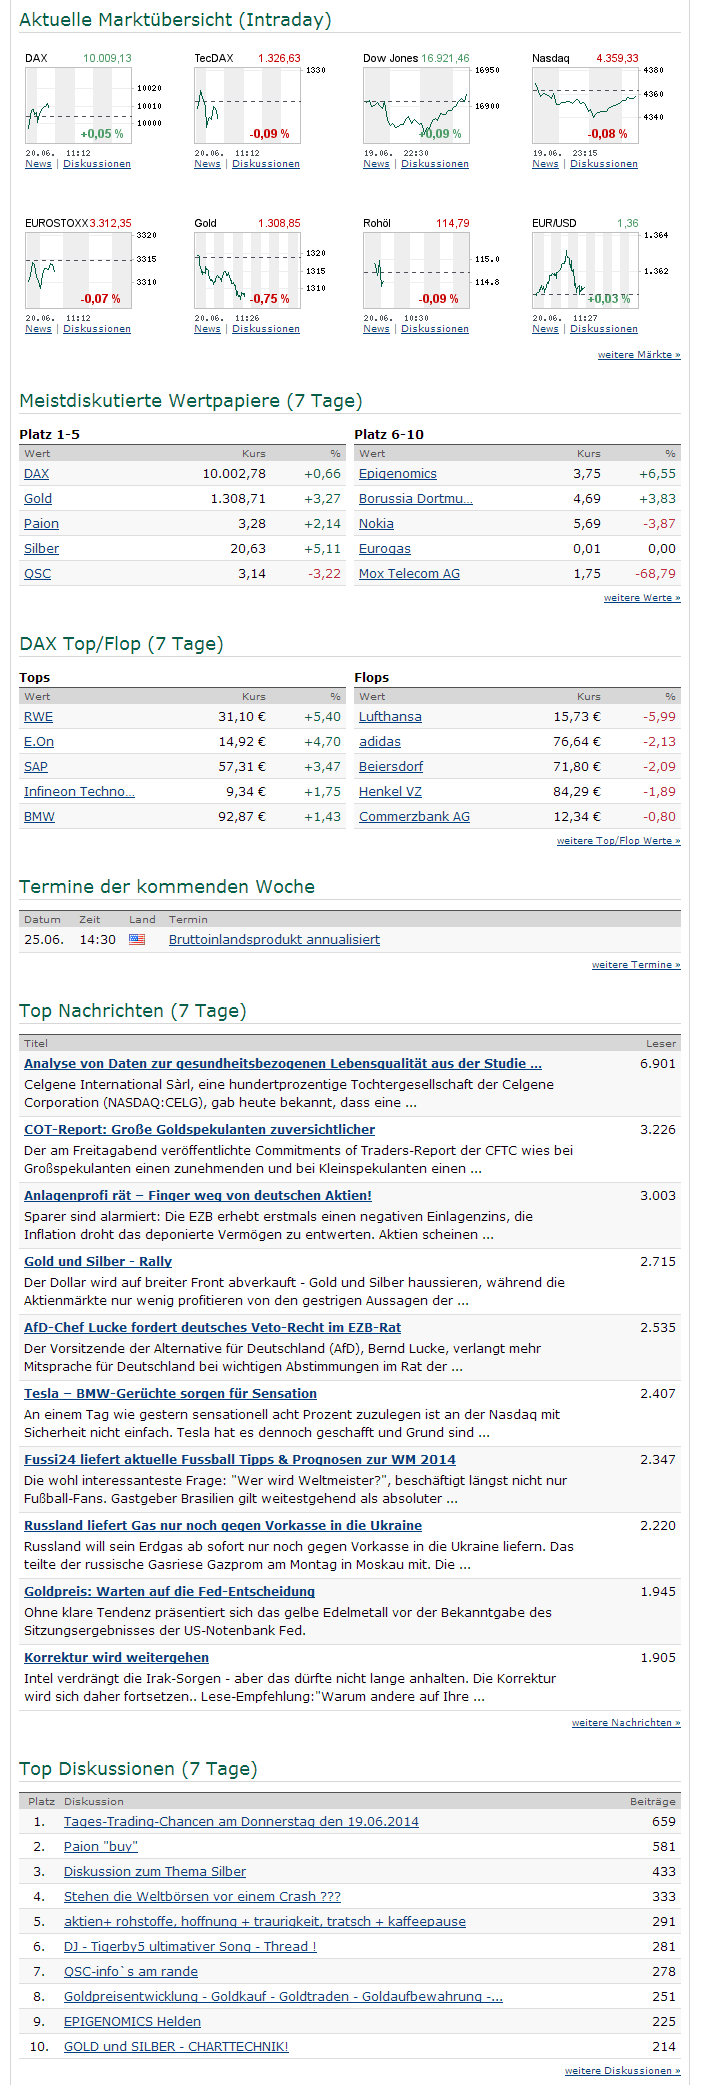 C deutsche bank online brokers